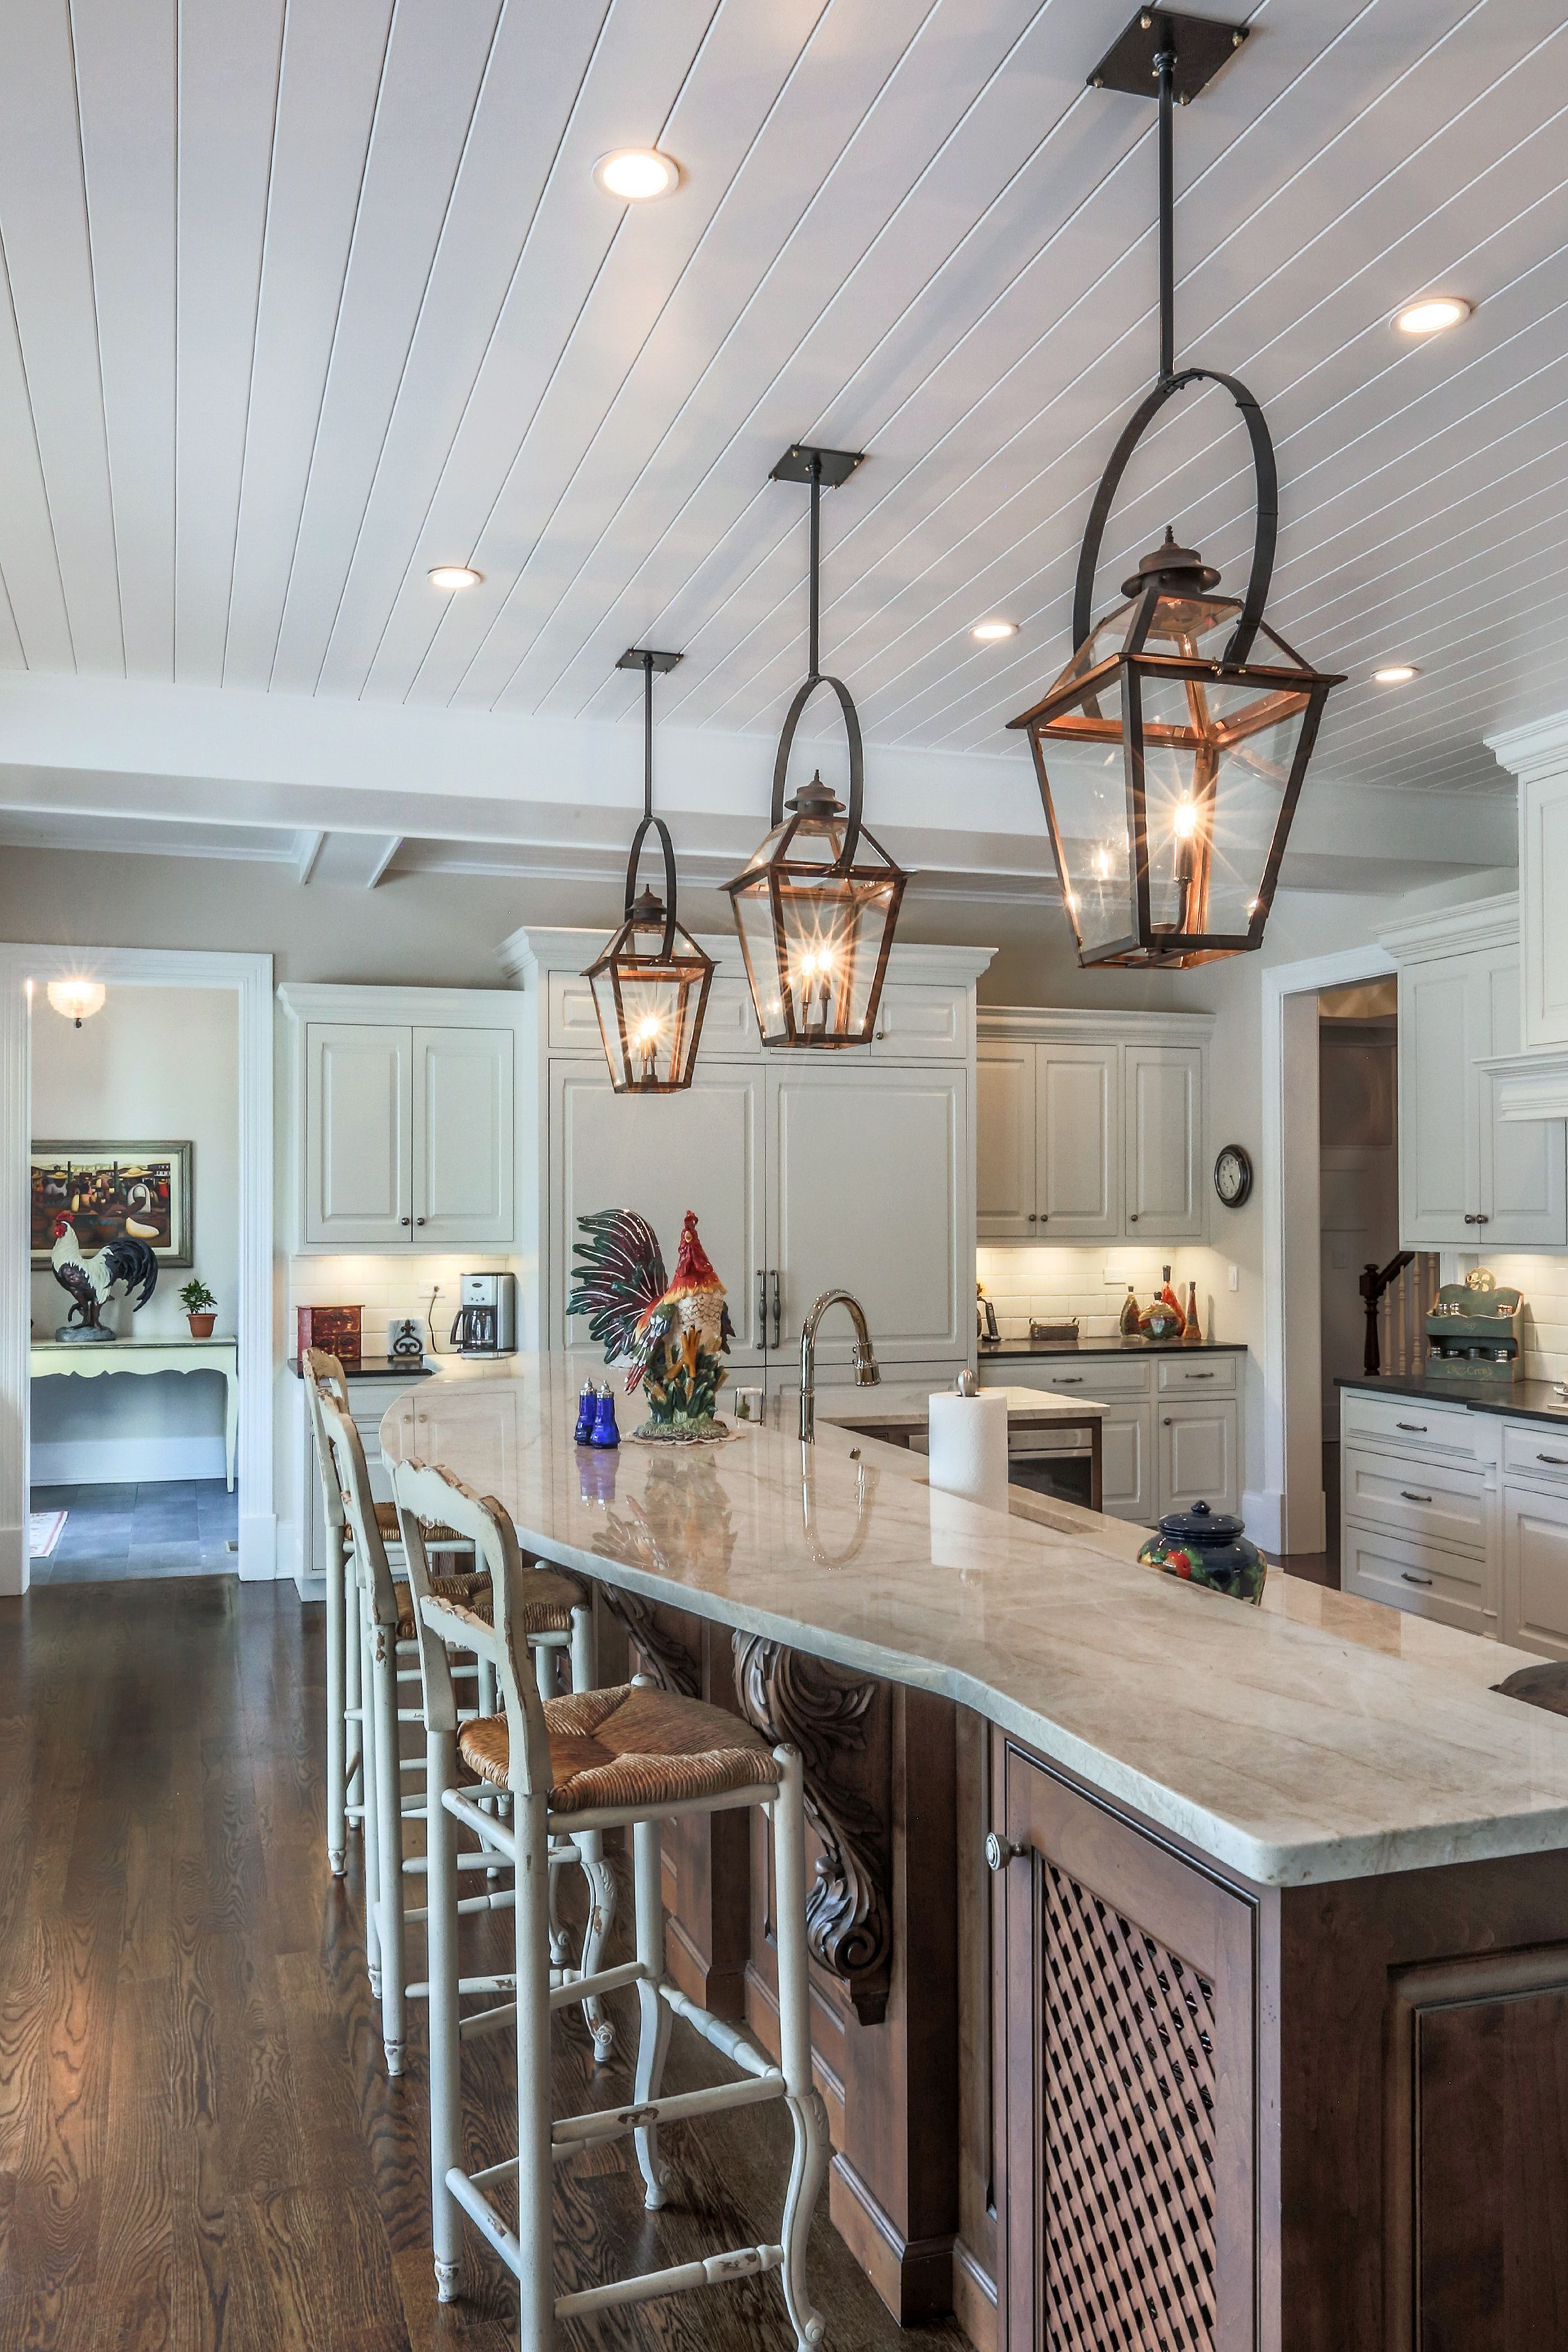 lantern kitchen lighting aid microwaves copper lanterns with black bails over 15 foot island